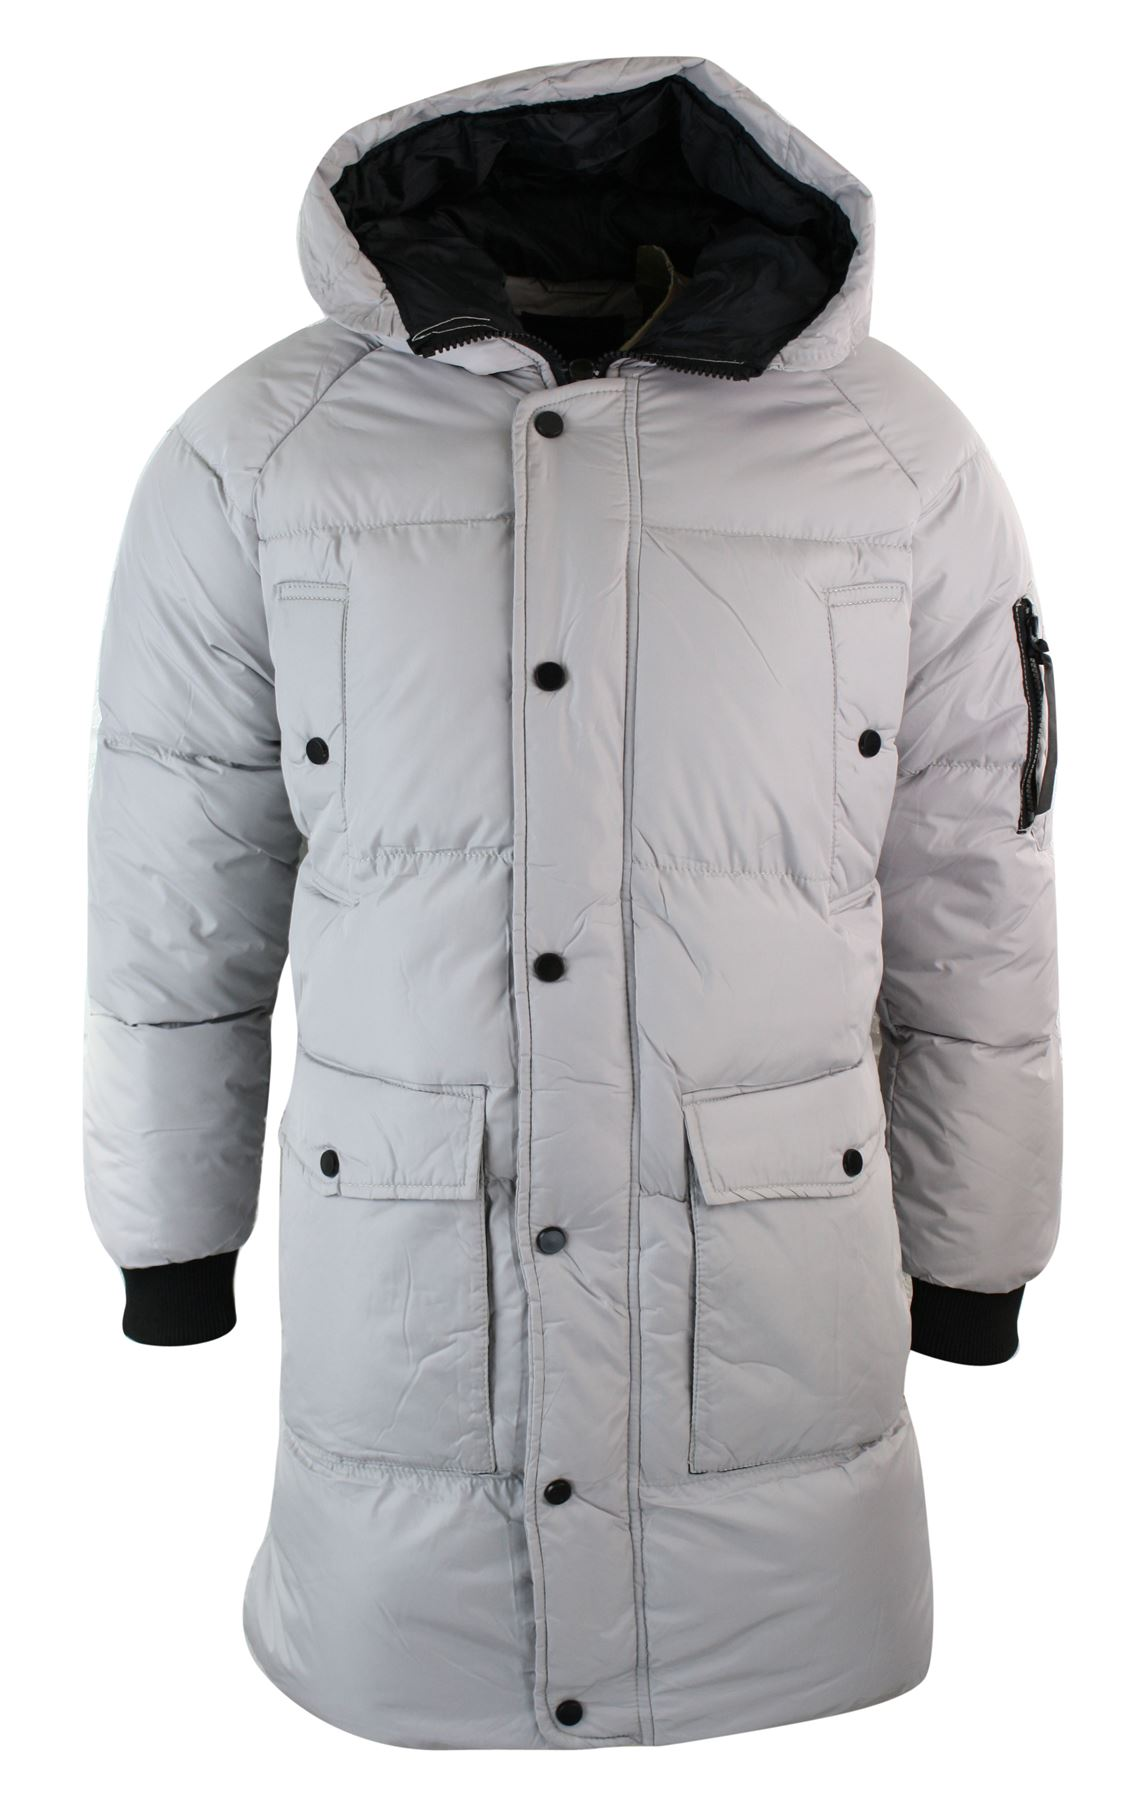 The A&F Removable Hood Packable Puffer. $ Clearance. New! Save quickview. Jacquard Shirt Jacket. Relaxed Fit. $98 Clearance. New! Save quickview. Jacquard Shirt Jacket. Relaxed Fit. $98 A&F mens coats and jackets come in sizes XS to XXL to make sure we have just the right fit for you.